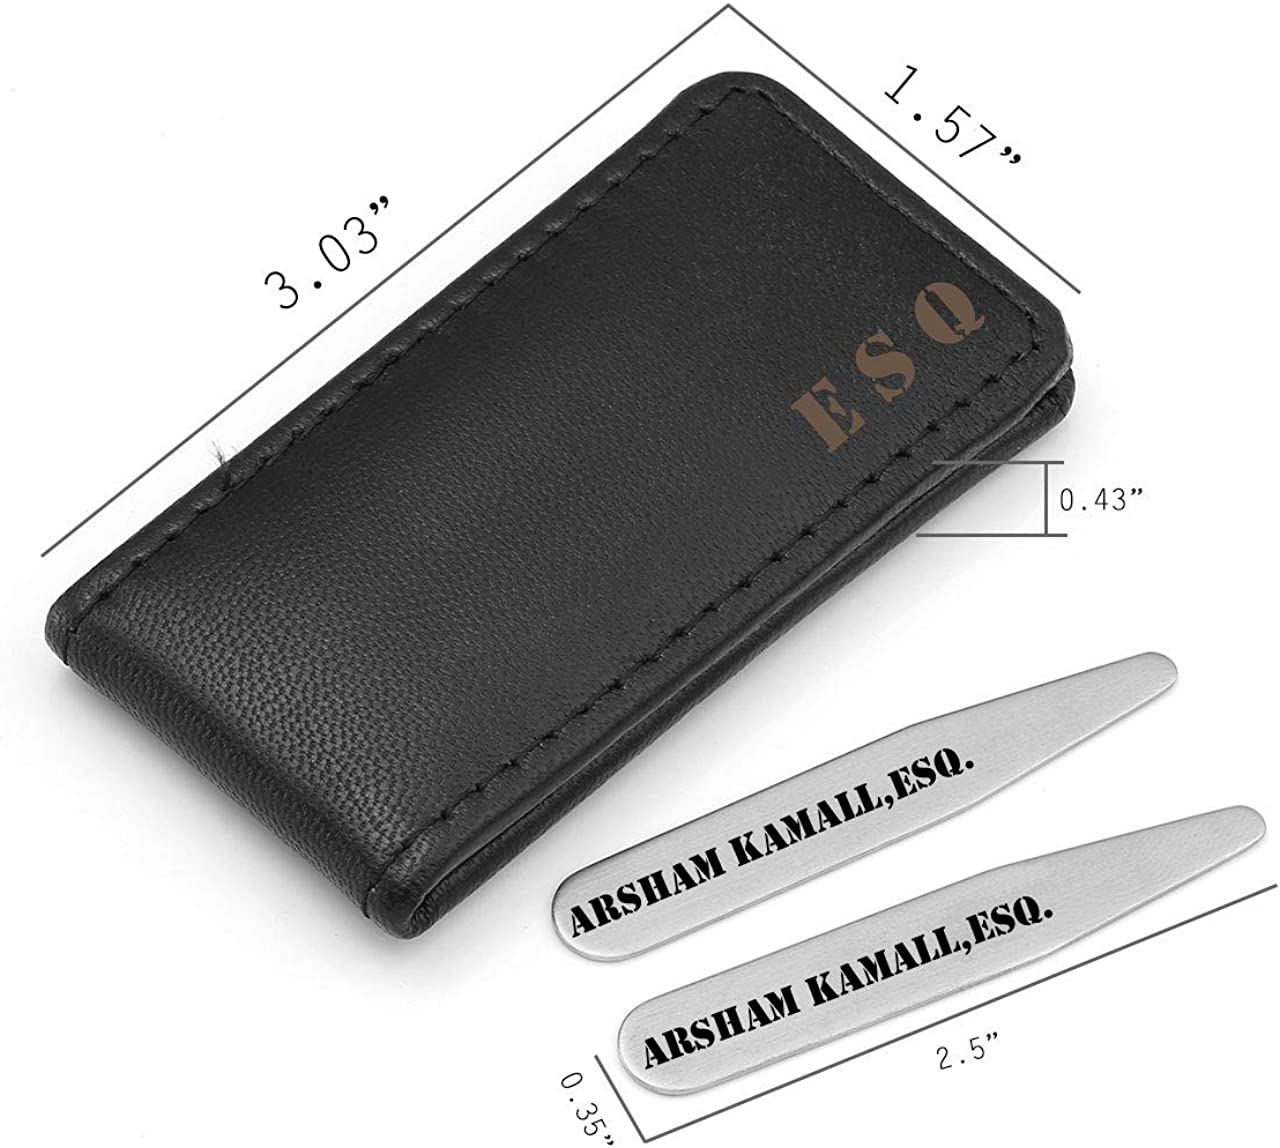 2.2 2.5 2.75 3 Personalized Master Free Engraving Custom Engraved Stainless Steel Collar Stays Travel Set for Men Dress Shirt Stiffeners in Genuine Leather Case Holder Wallet